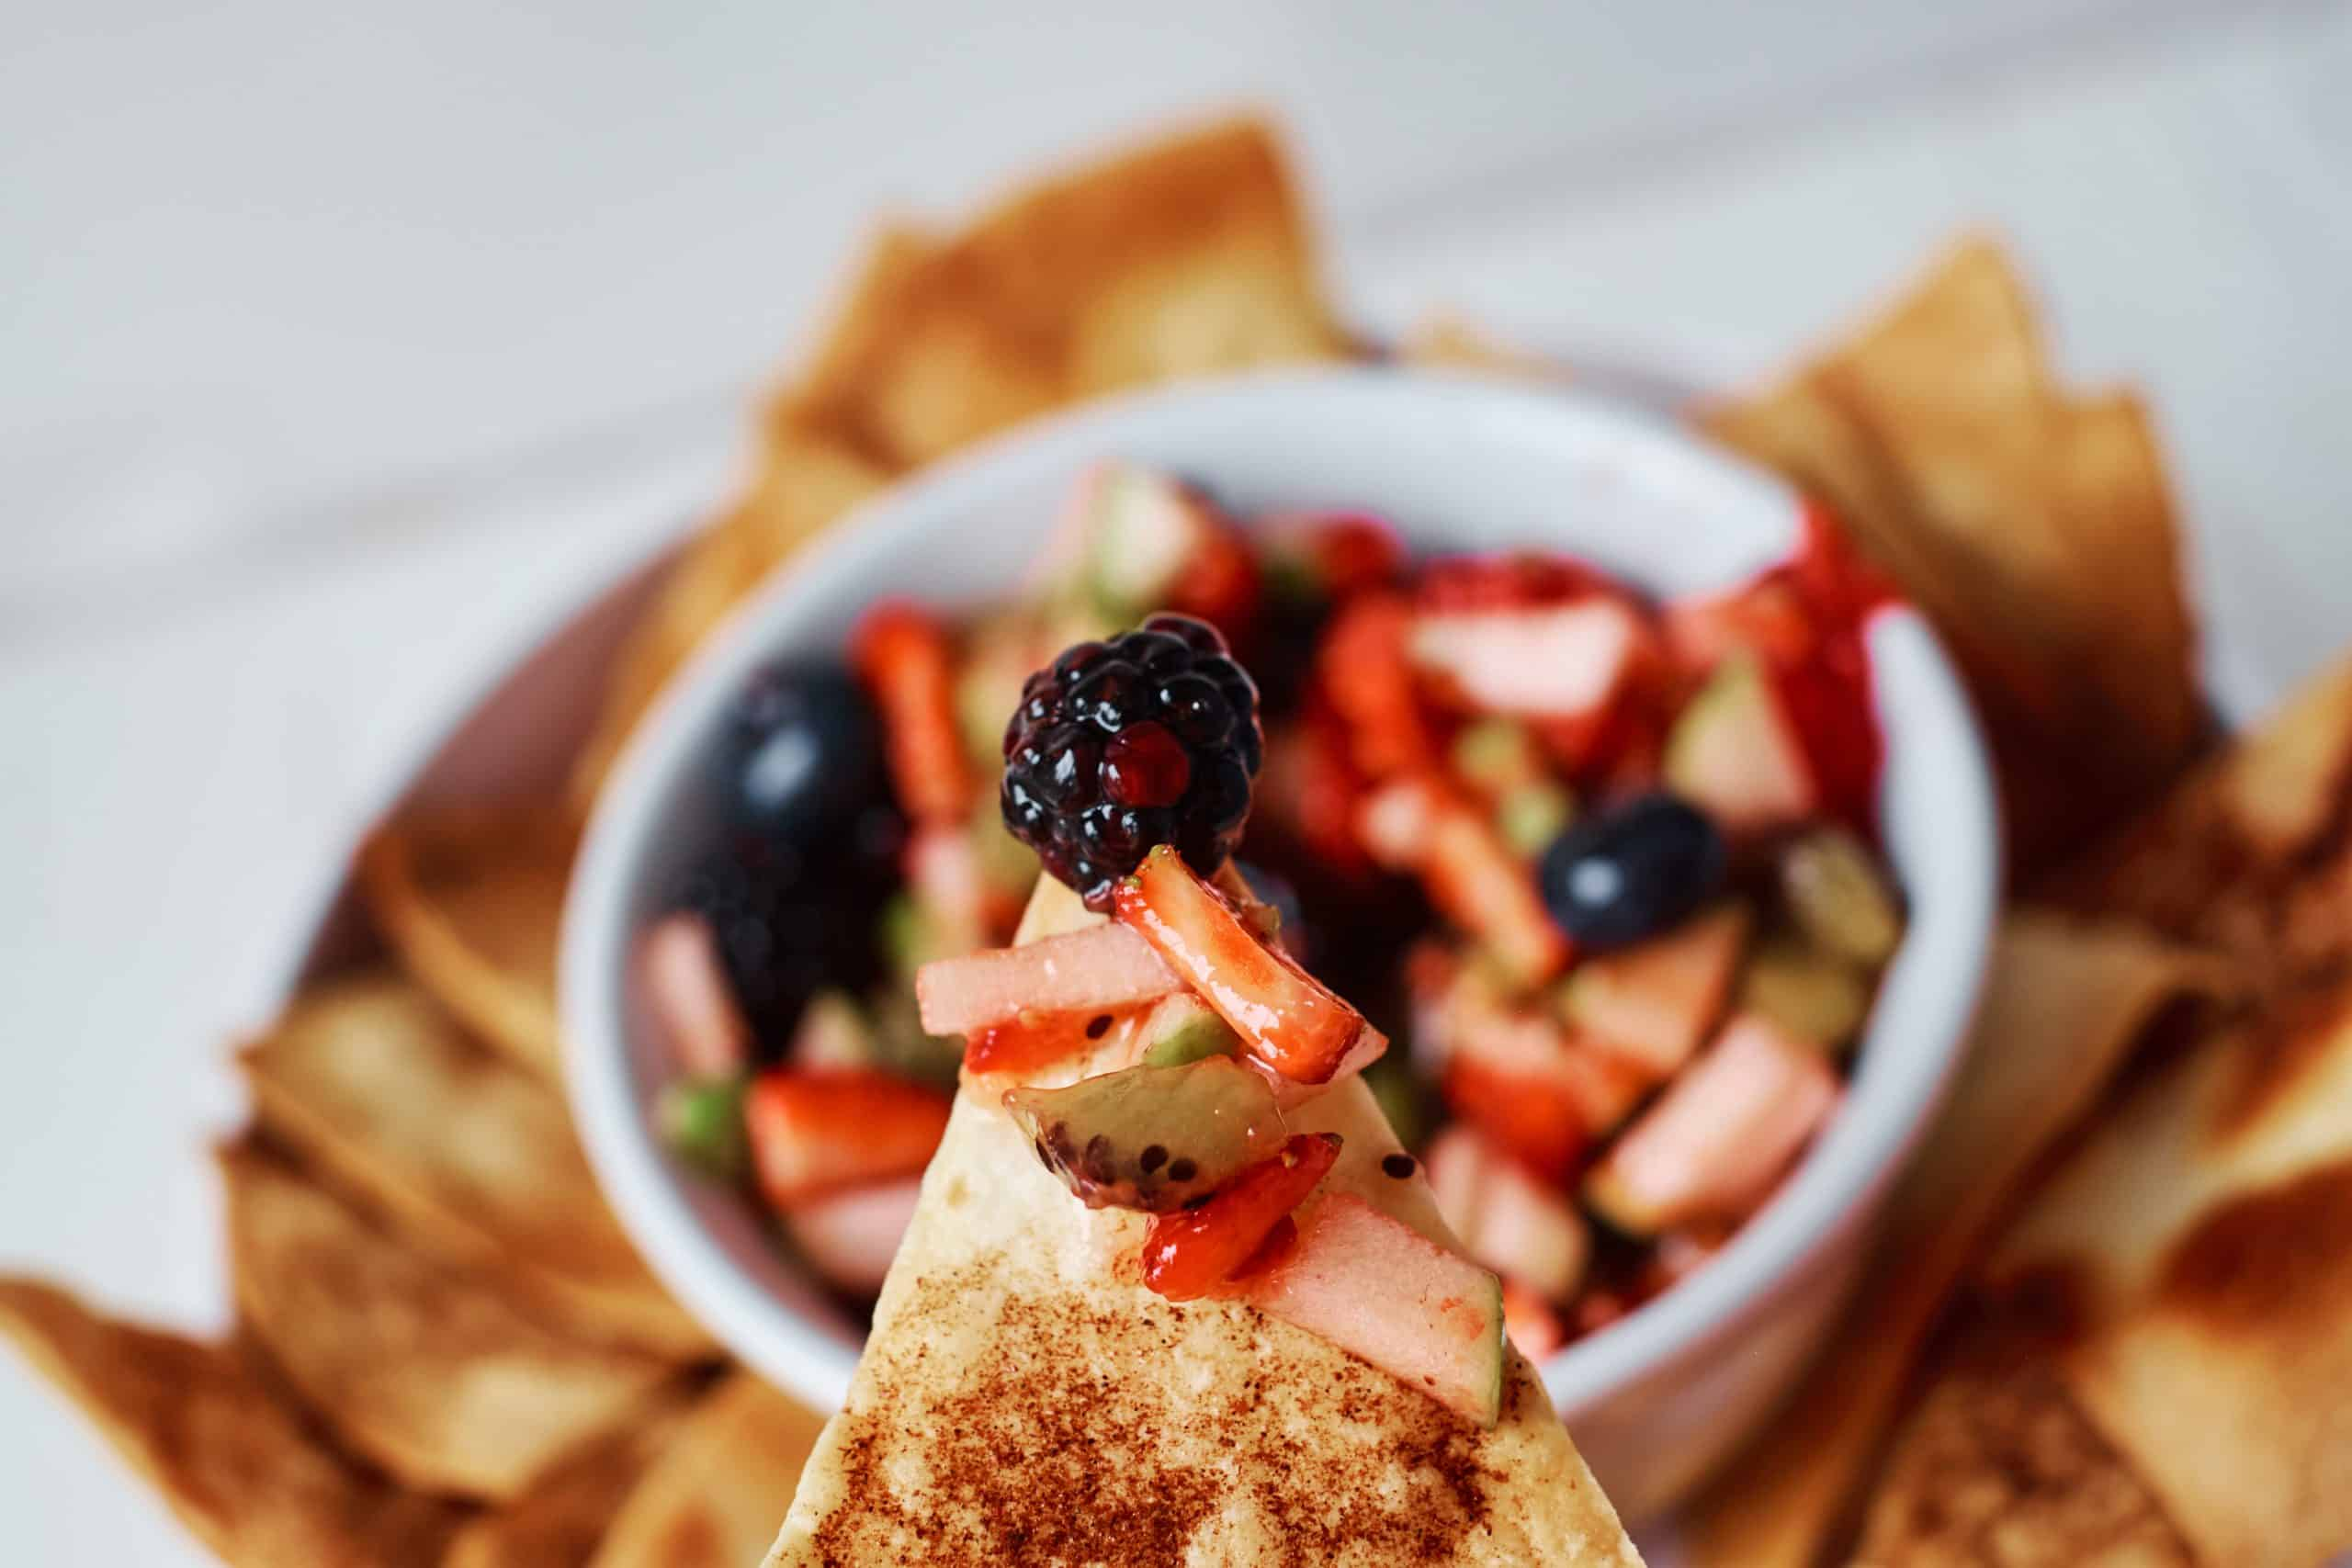 closeup of cinnamon tortilla chip with fruit salsa on it.